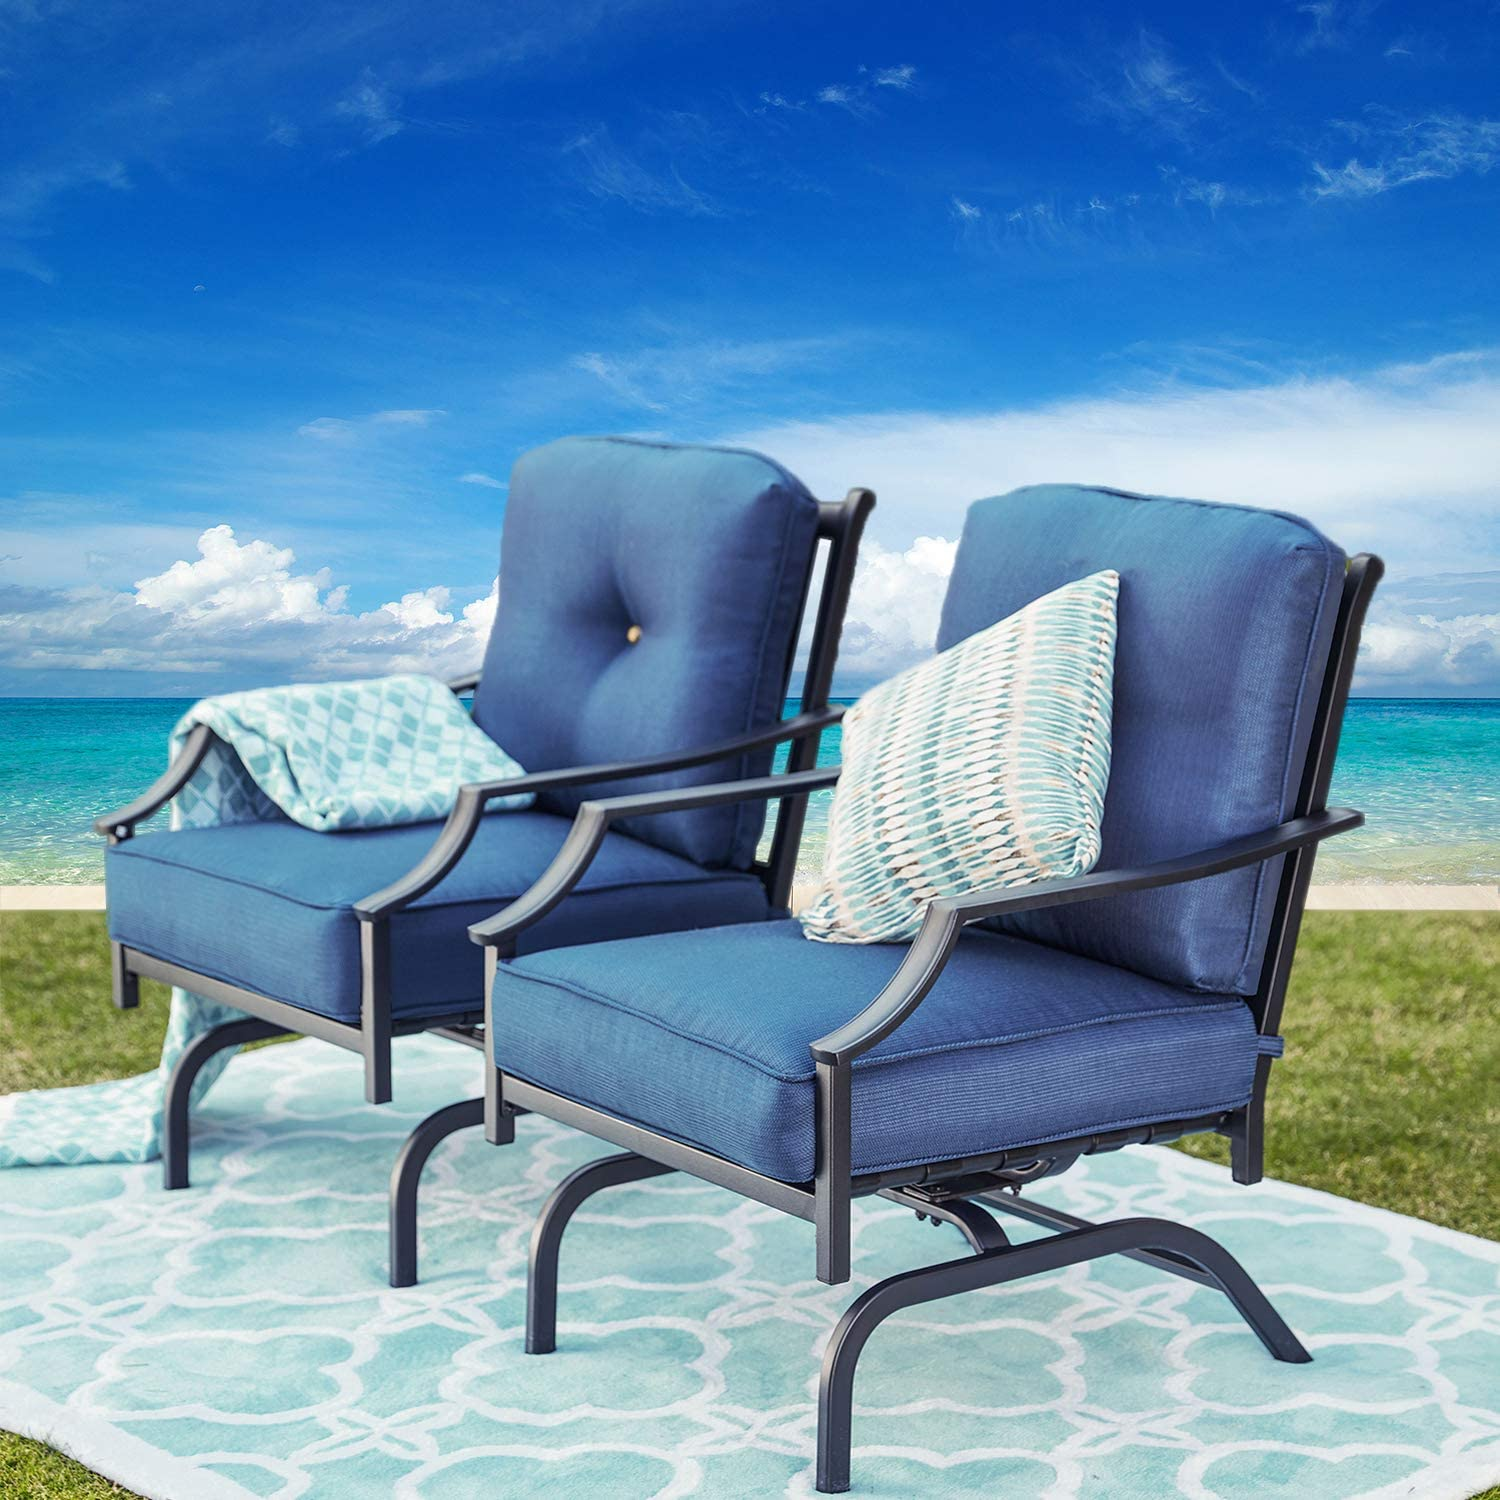 Festival Depot Patio Dining Chair Set with Surprise famous price Metal Armchairs 2 of